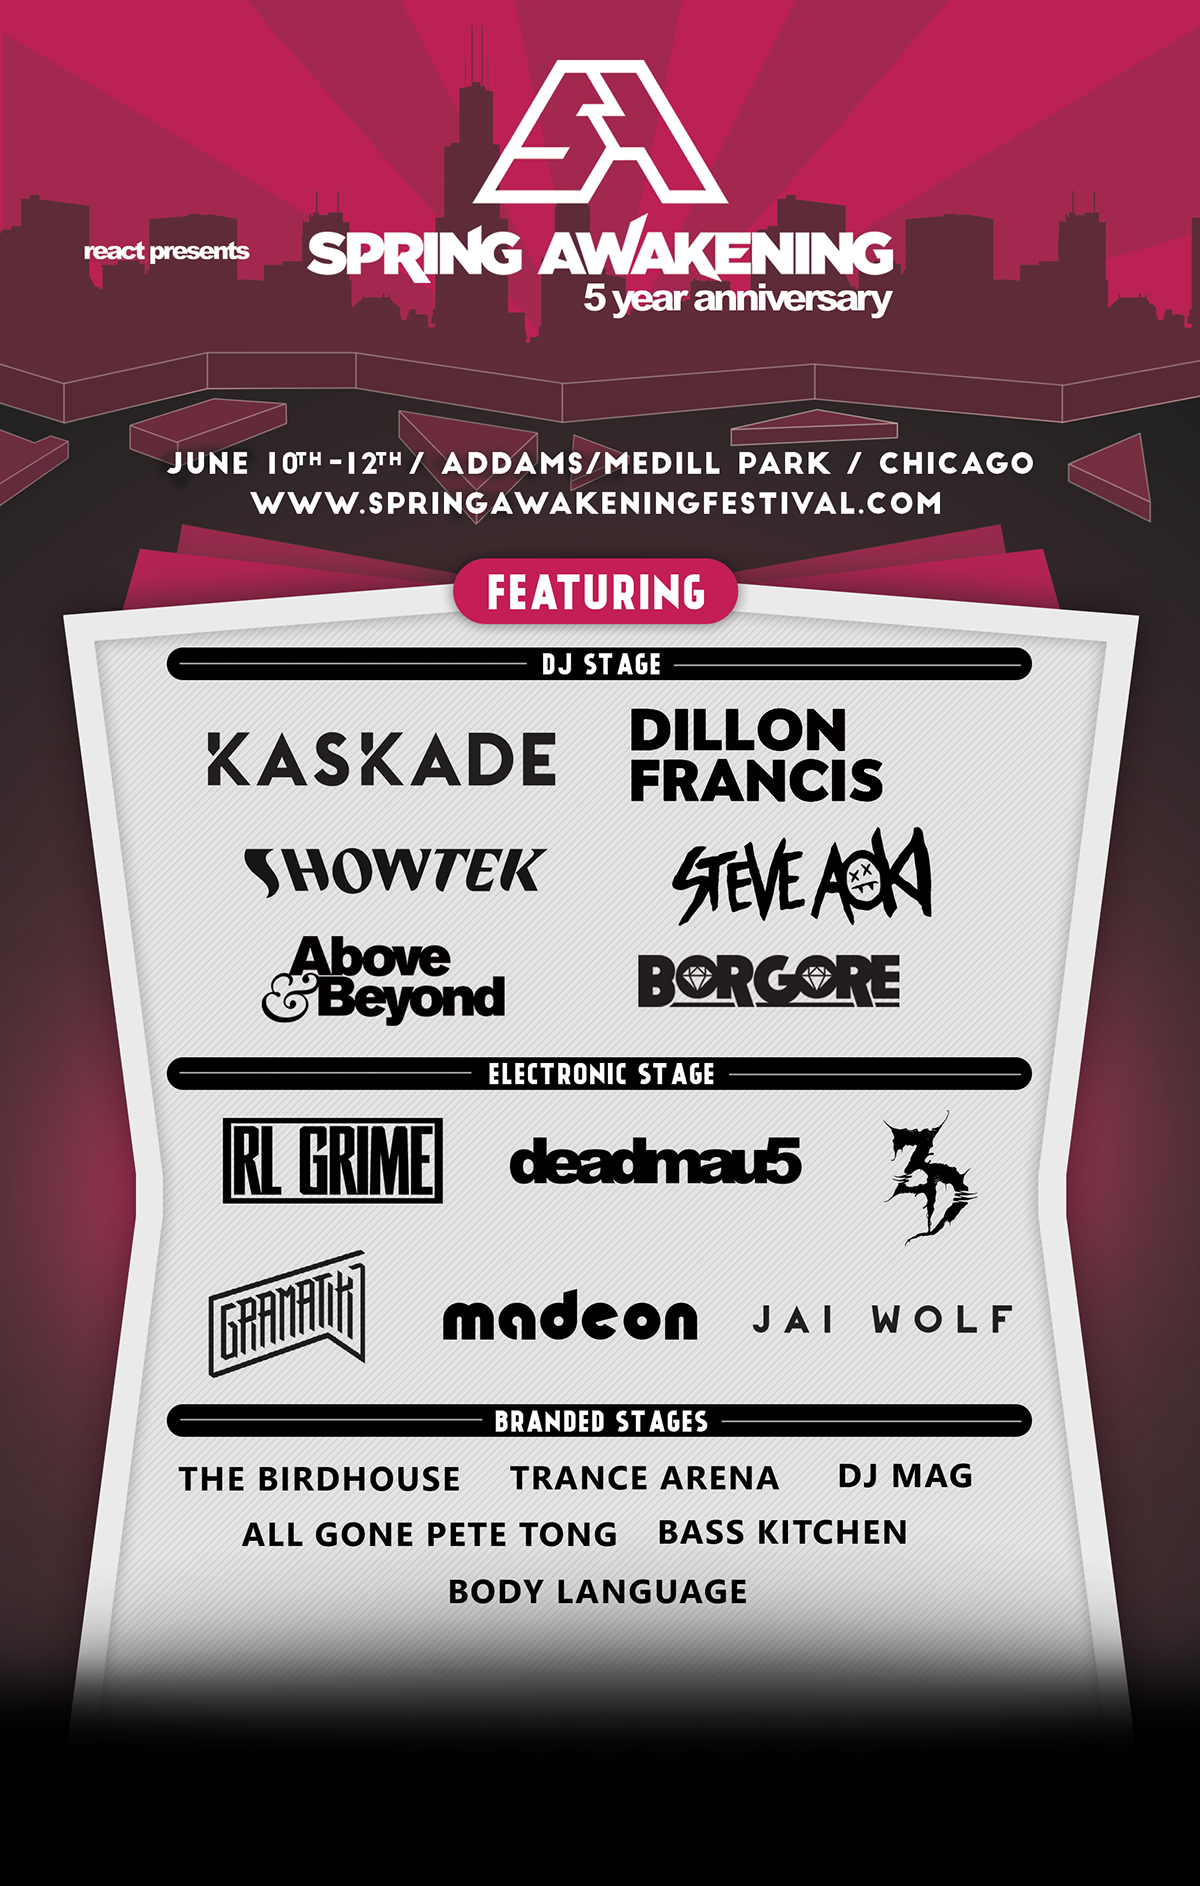 Samf samf '16 - poster contest submission on behance